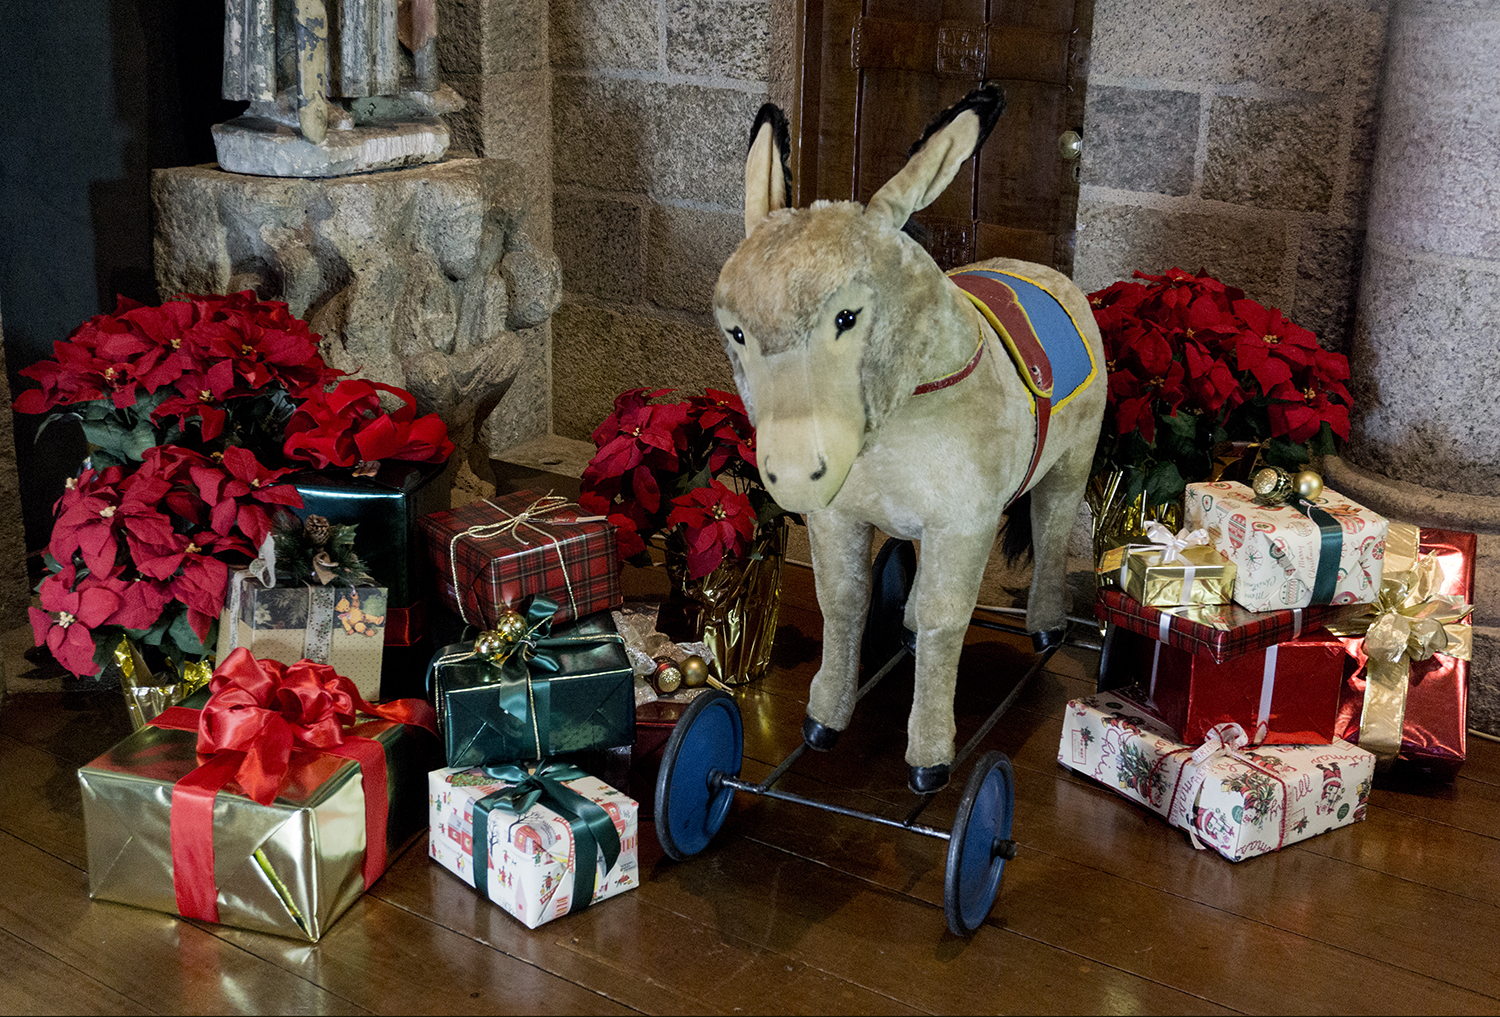 """Figure 20:One of the new additions to the """"Christmas in the Castle"""" tour this year is a large, ride-on Steiff donkey, donated back to Glencairn by members of the Pitcairn family. When the Pitcairns lived at Glencairn it was placed each year beneath the Christmas tree."""